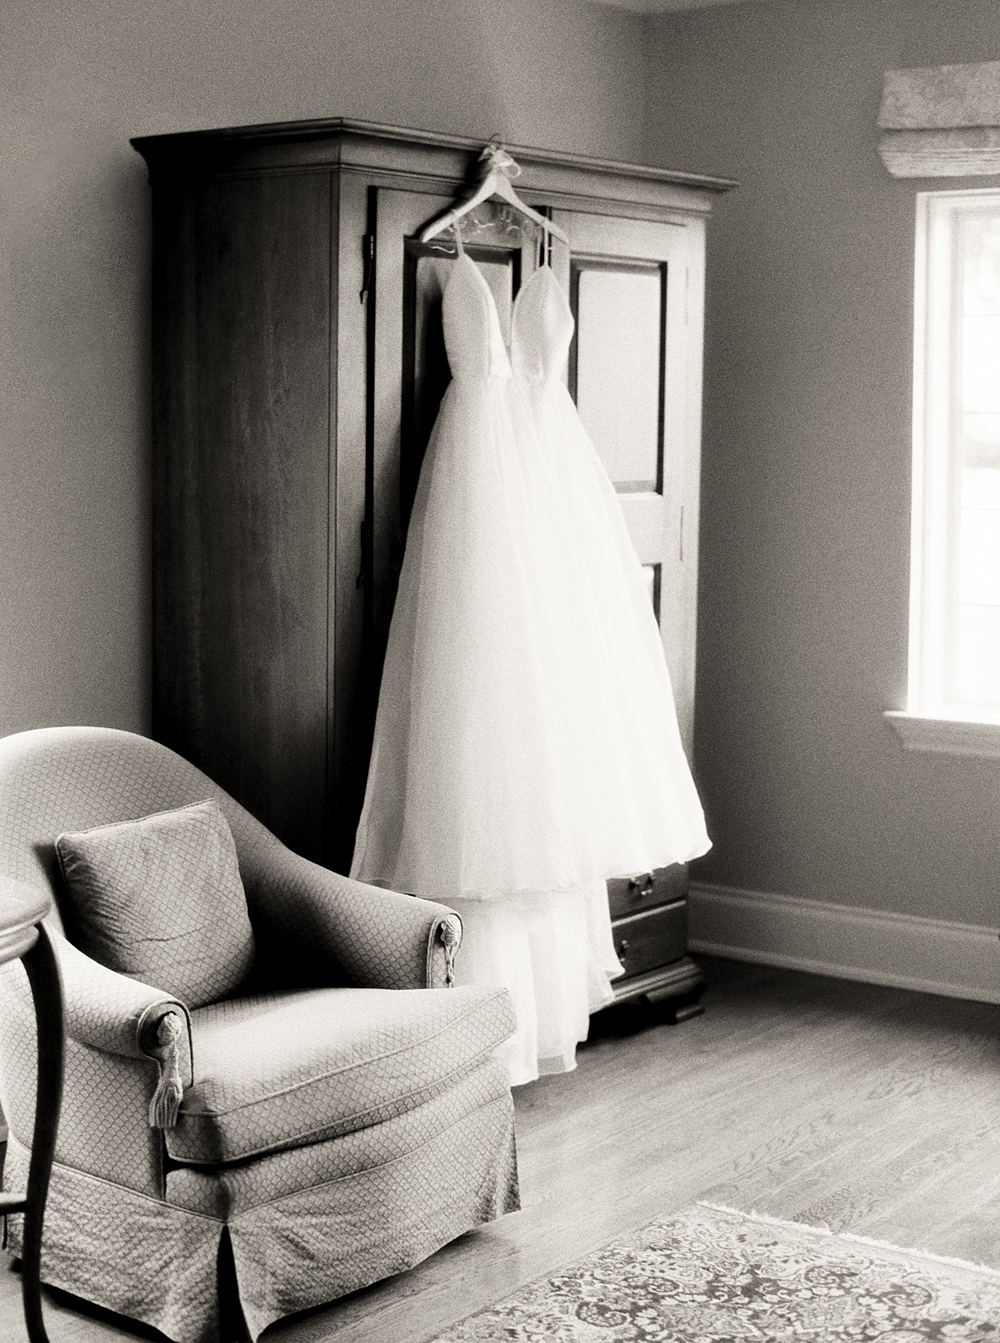 Wedding Gown hanging on the wardrobe before she puts it on, black and white image